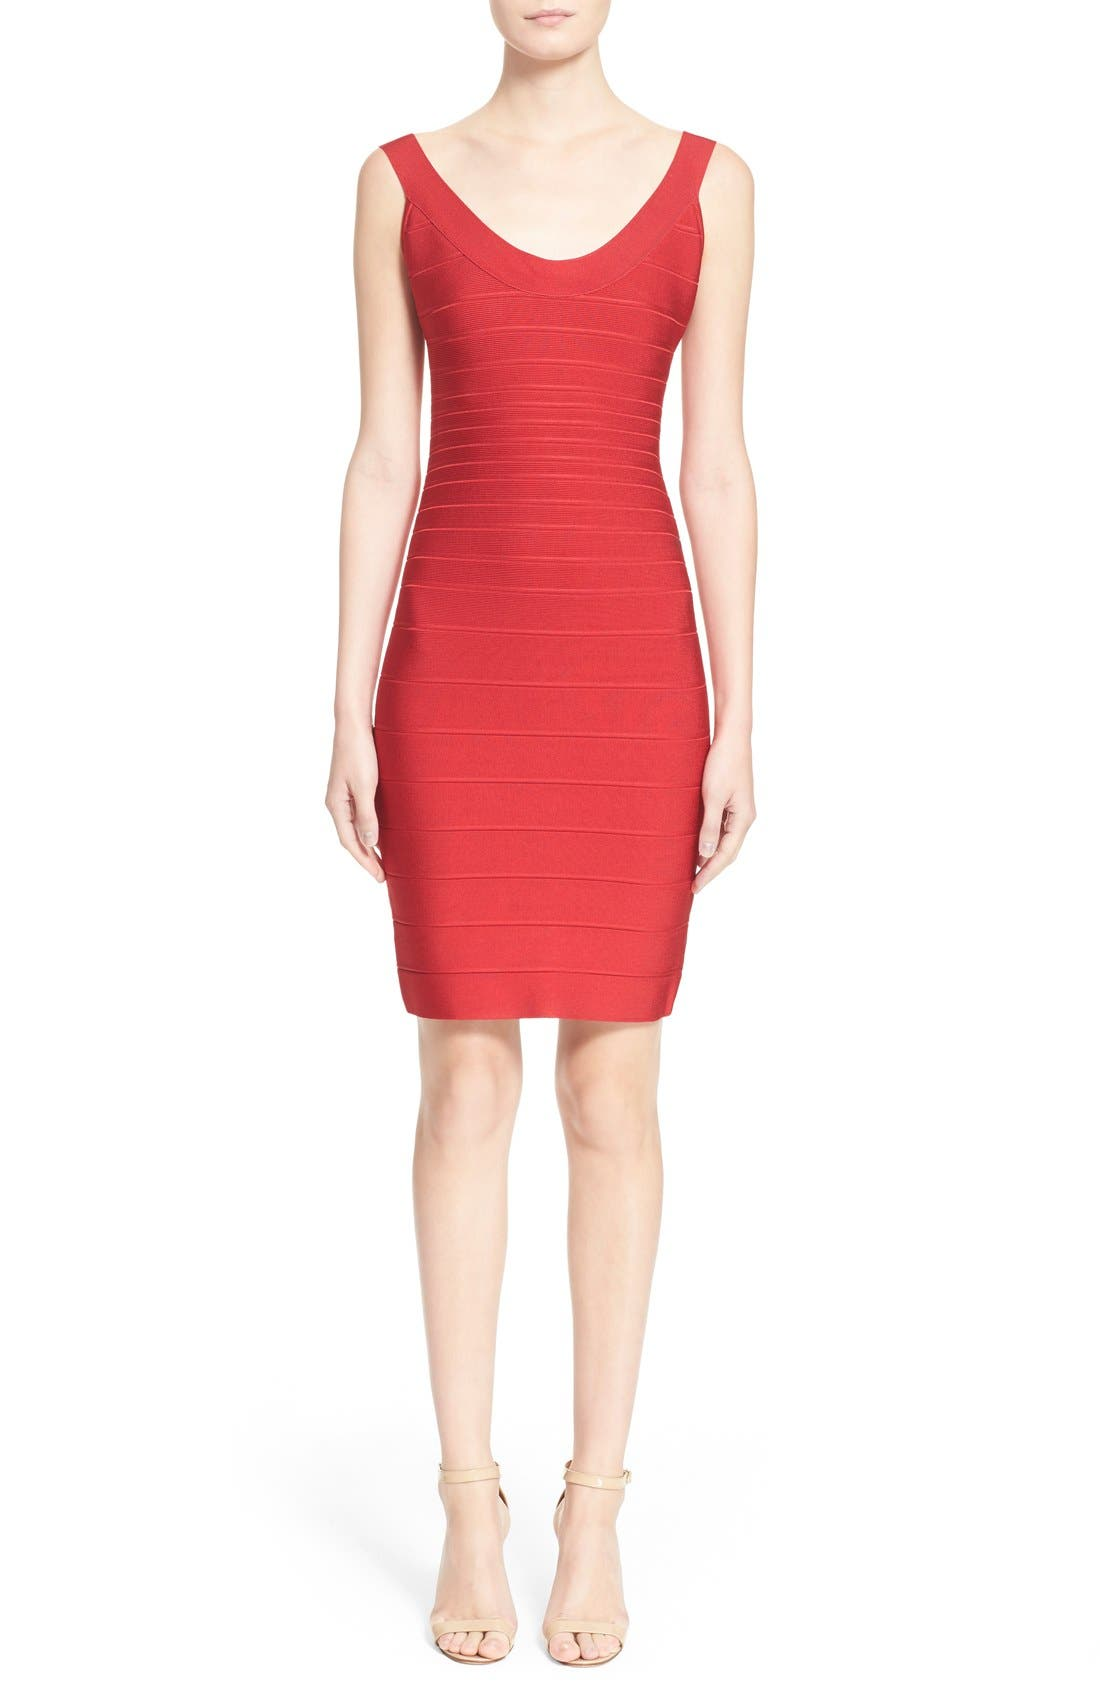 Main Image - Herve Leger 'Sydney' U-Neck Bandage Dress